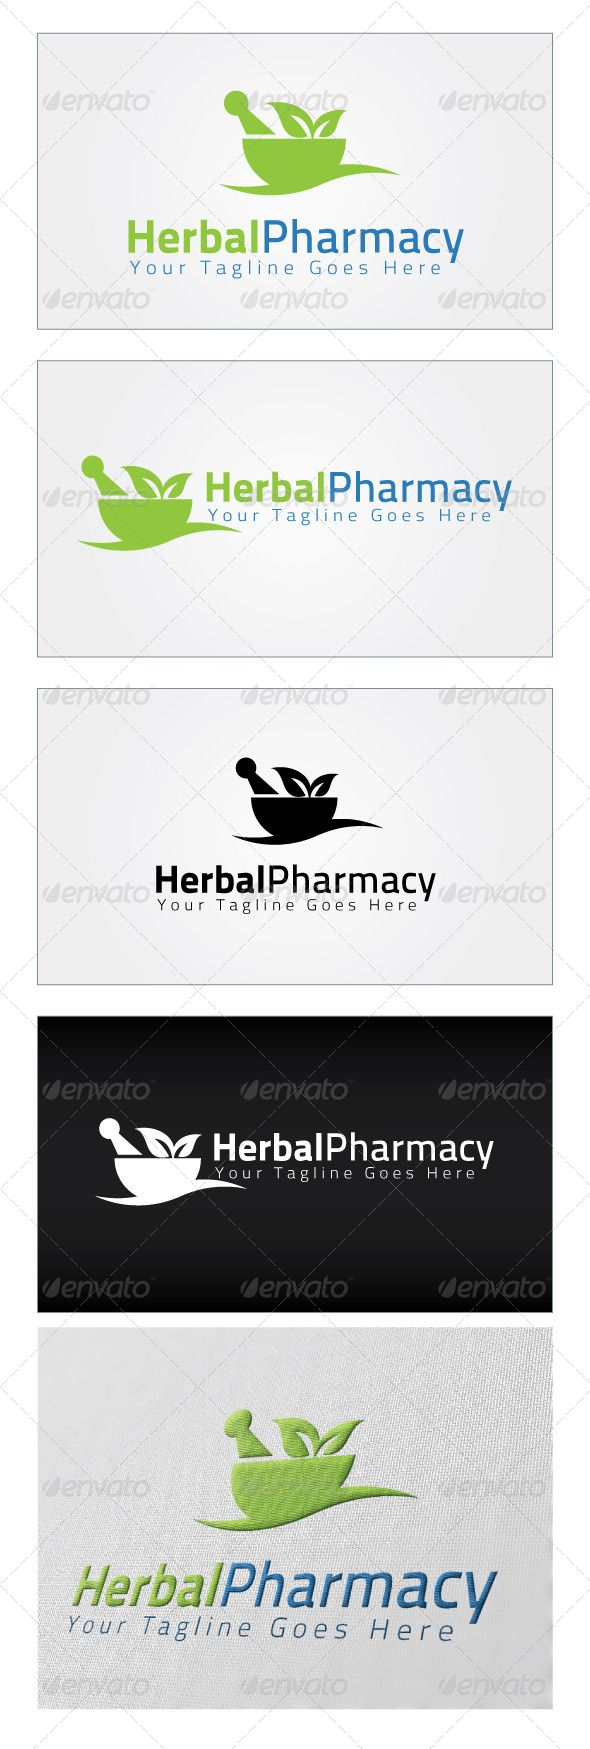 Herbal Pharmacy - Logo Design Template Vector #logotype Download it here: http://graphicriver.net/item/herbal-pharmacy-logo-template/5021989?s_rank=85?ref=nexion